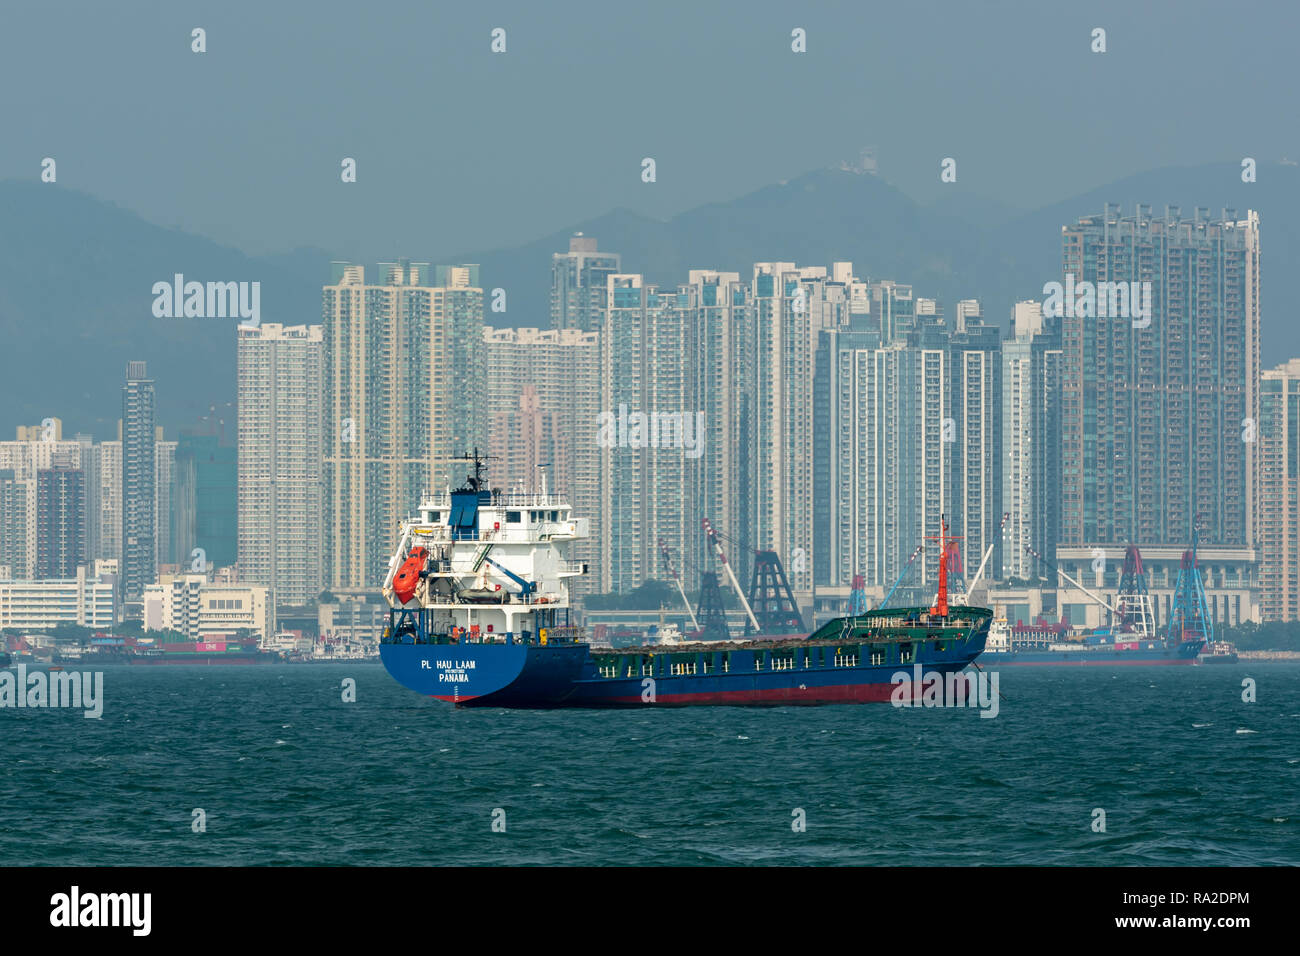 The Panamanian flagged general cargo vessel 'PL Hau Laam' moored off Tai Kok Tsui in Hong Kong with towering apartment blocks fringing the harbour. - Stock Image